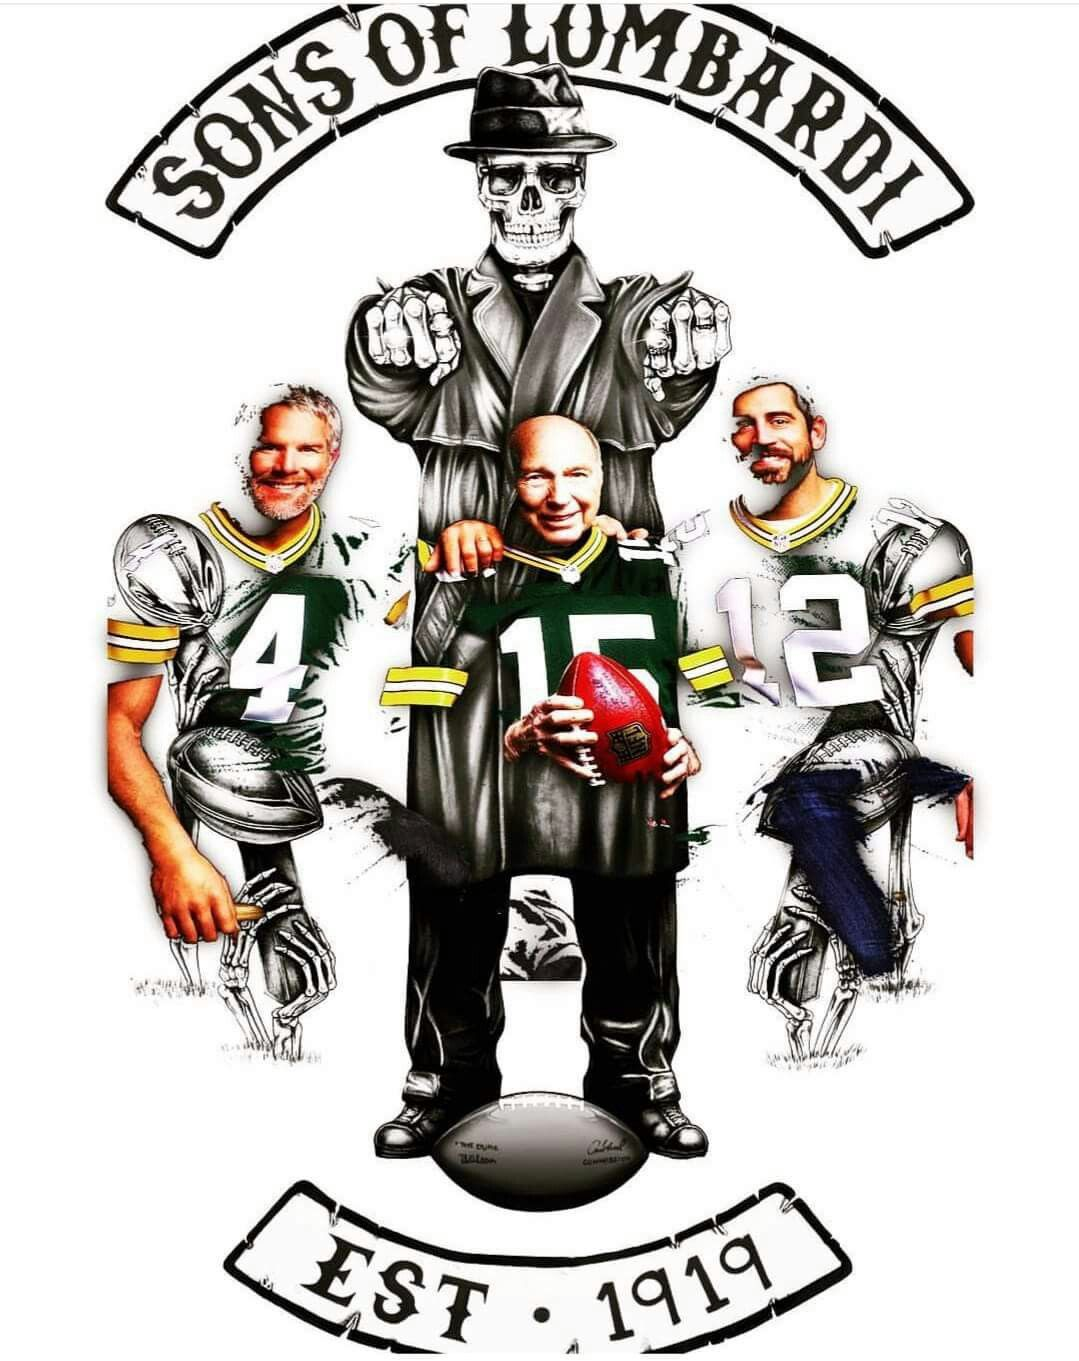 Pin By Jesus Bonilla On 1 Green Bay Packers My Team Green Bay Packers Funny Green Bay Packers Vintage Green Bay Packers Logo